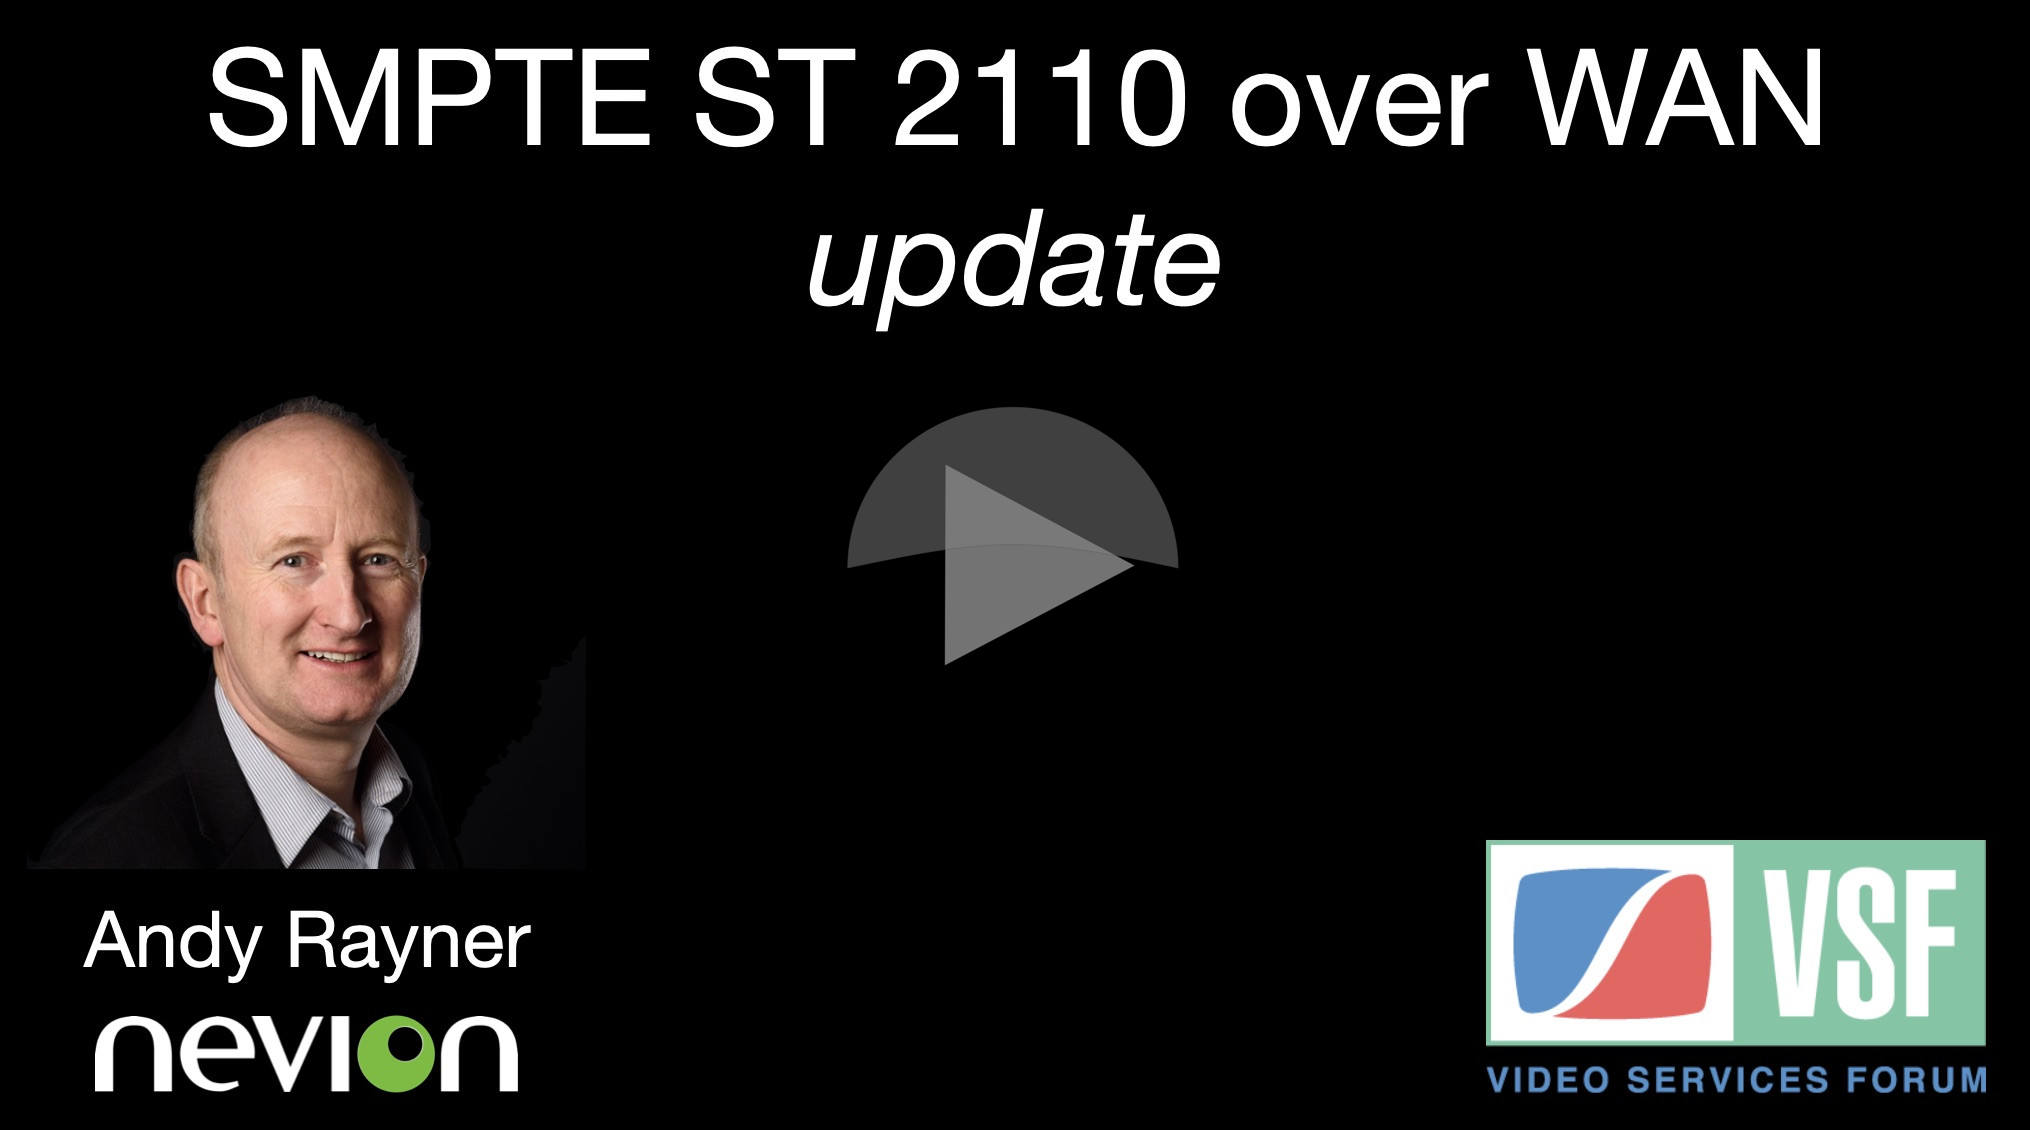 2110 Over WAN Update